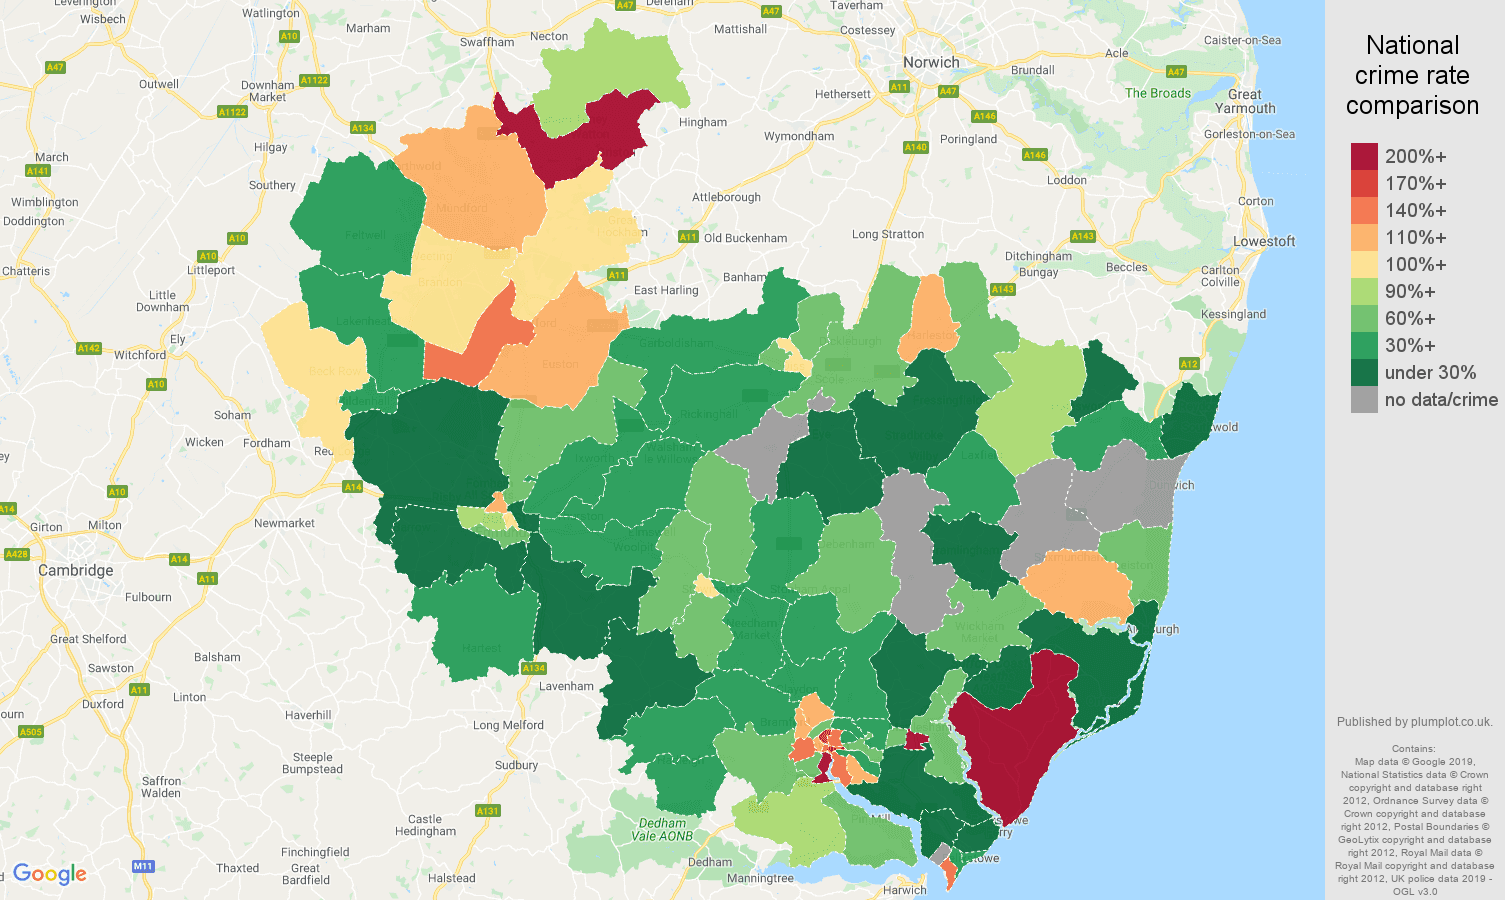 Ipswich other crime rate comparison map